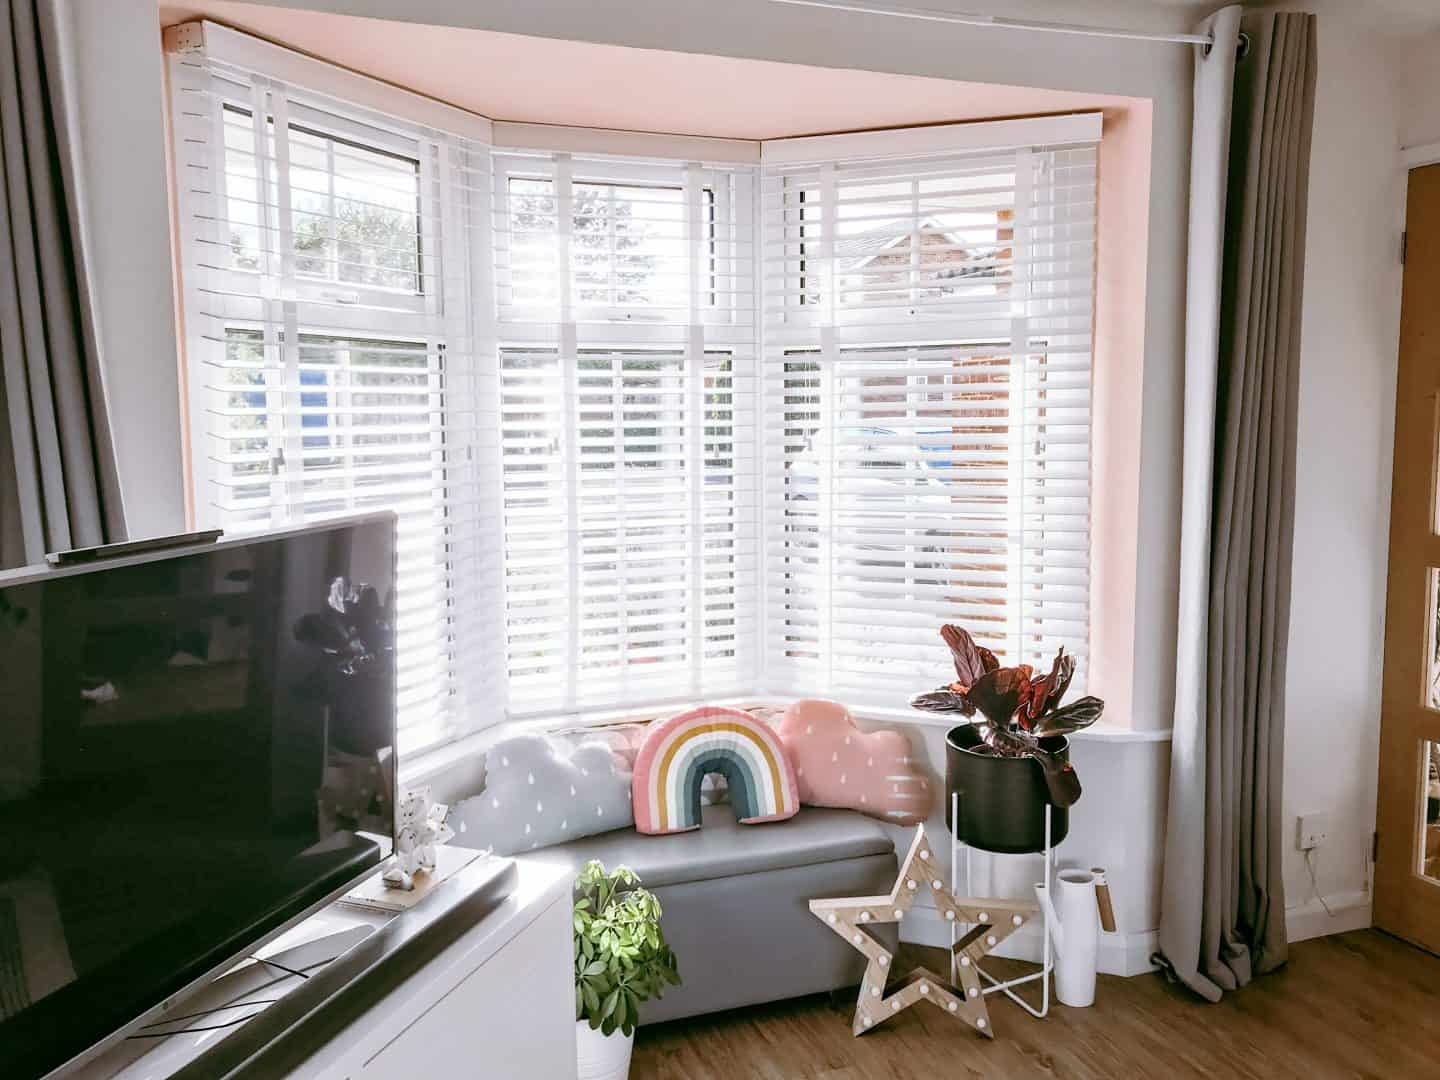 Create The Look Of Shutters With Wooden Blinds With Tapes